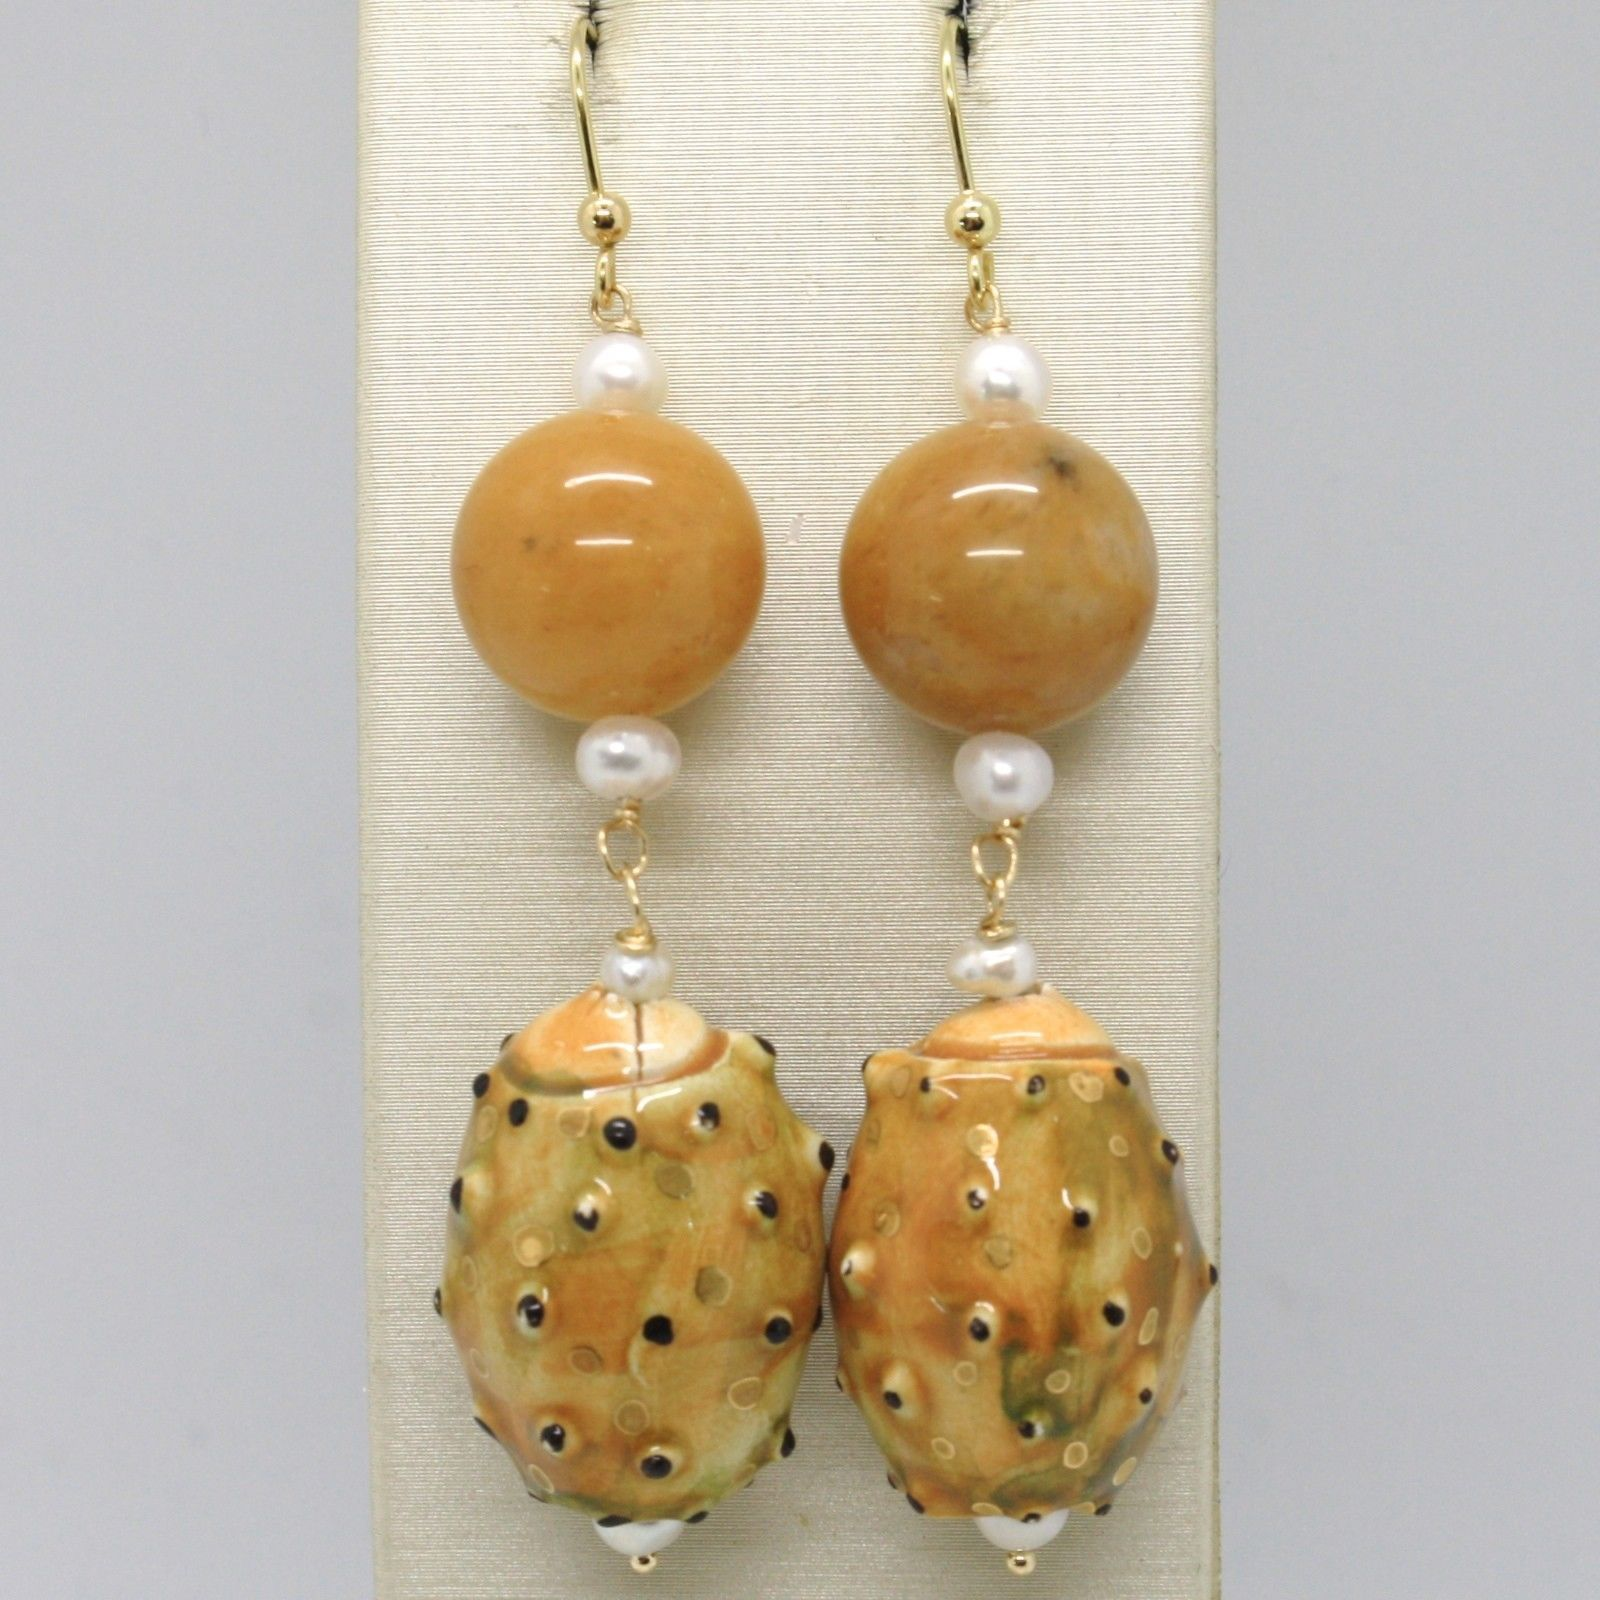 18K YELLOW GOLD EARRINGS ARAGONITE CERAMIC PRICKLY PEAR HAND PAINTED IN ITALY